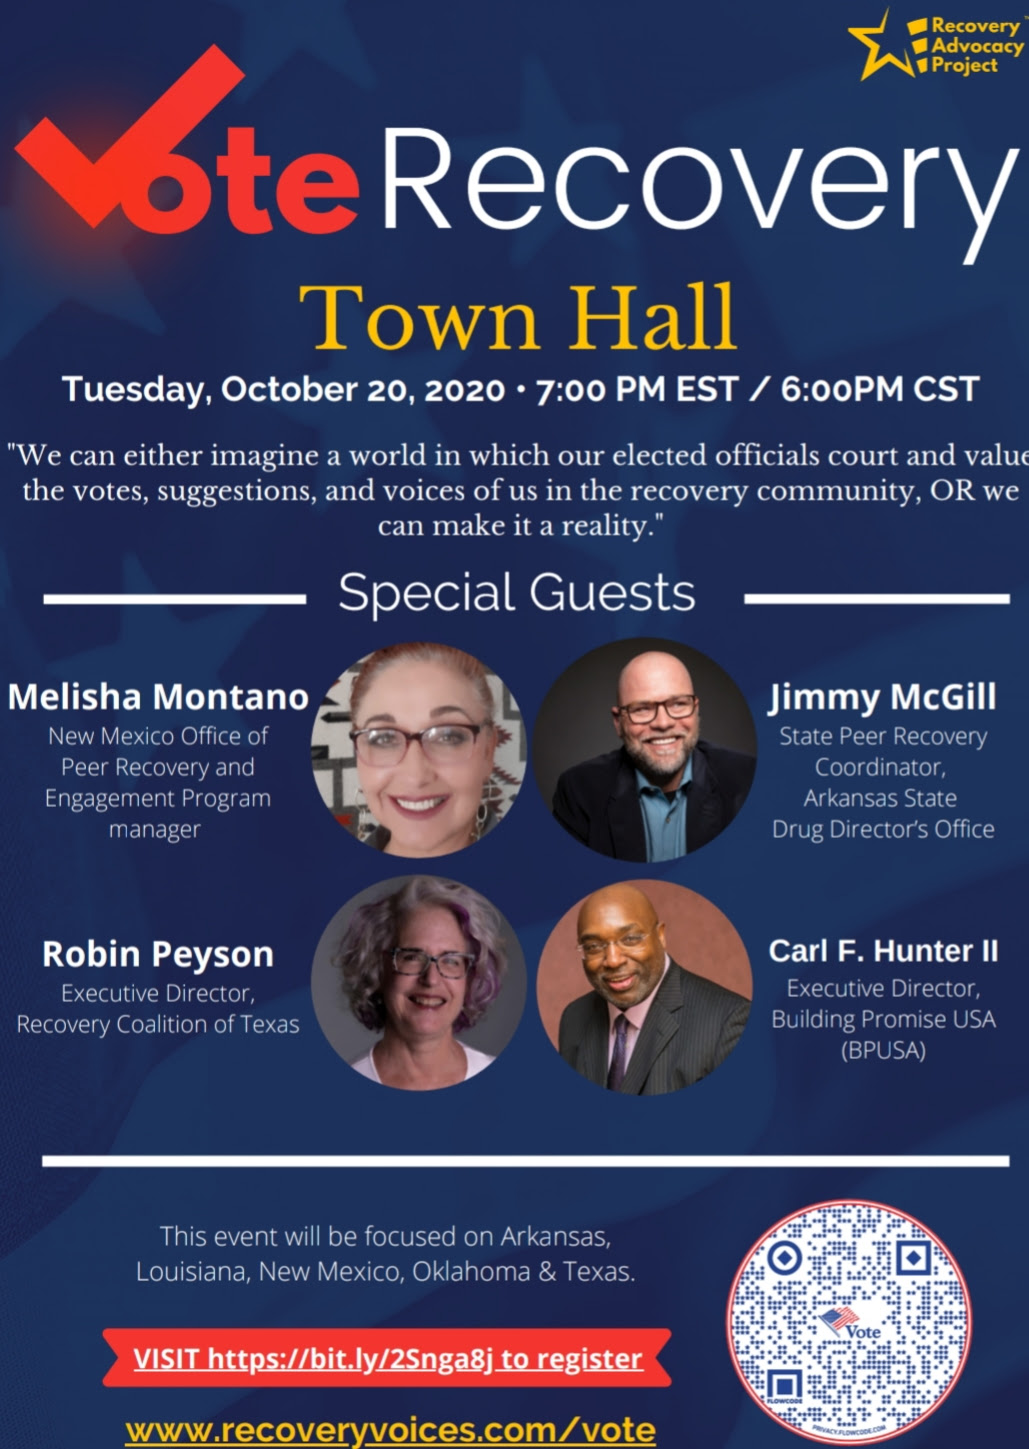 vote recovery town hall flyer